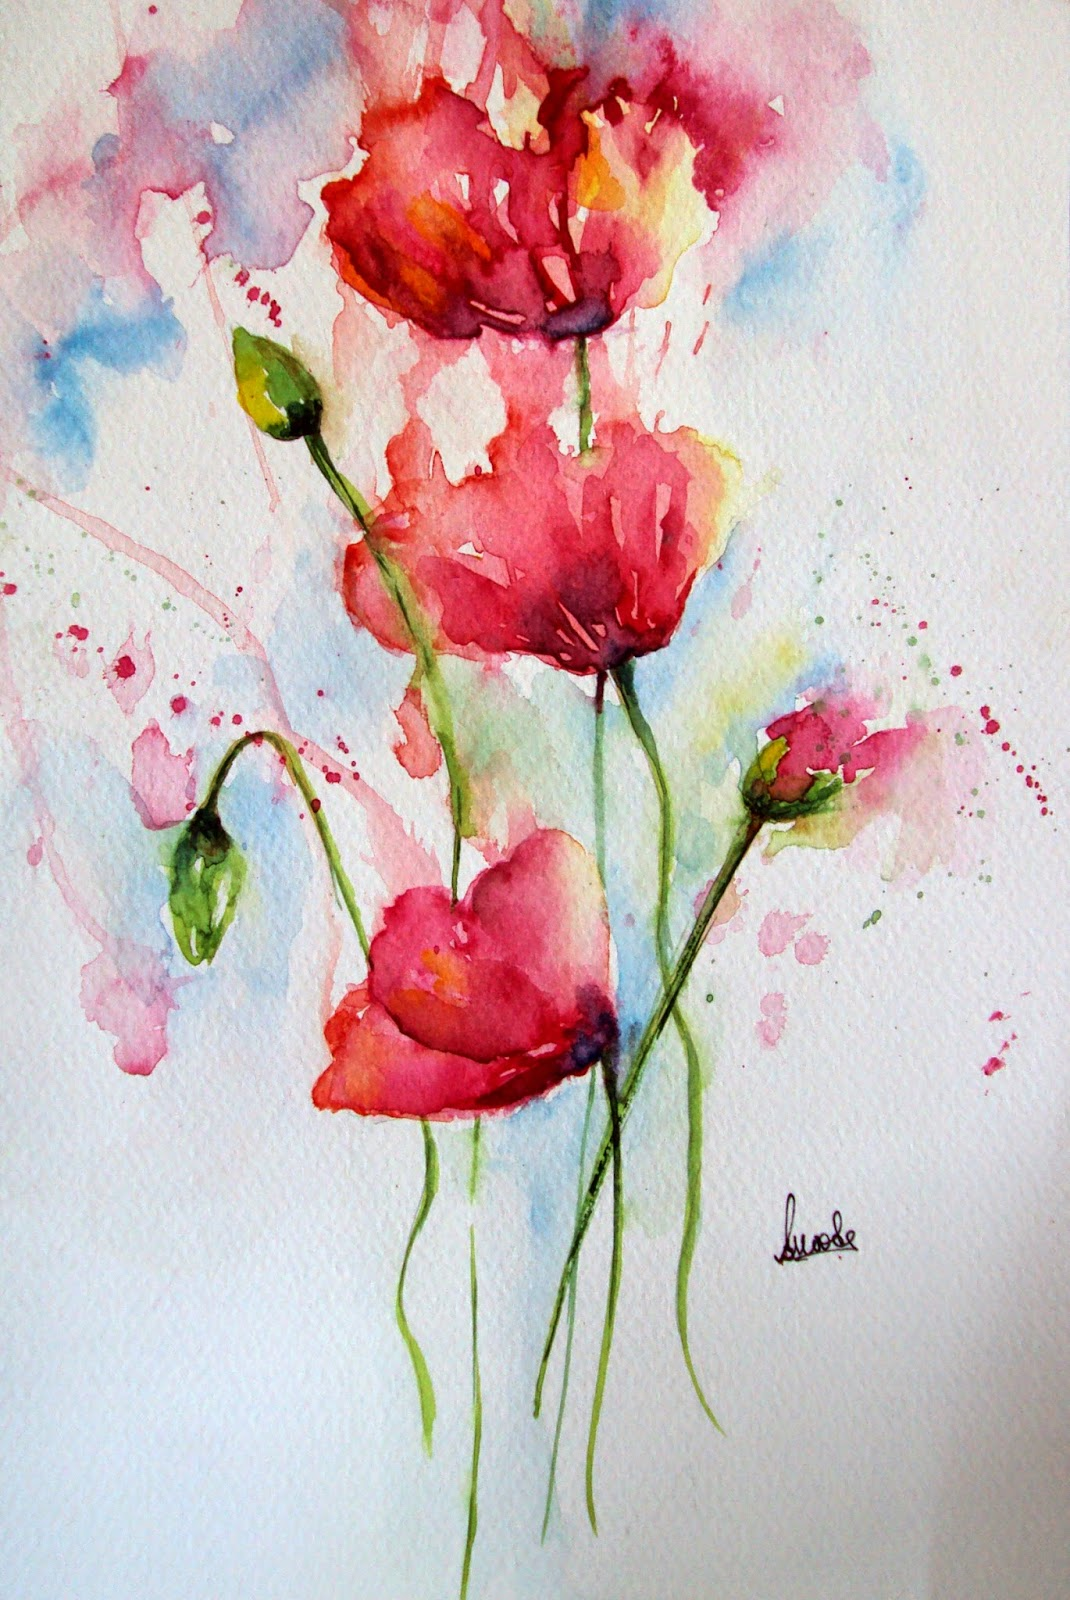 Singhroha art watercolors poppy poppies flowers floral watercolor watercolour painting garden mightylinksfo